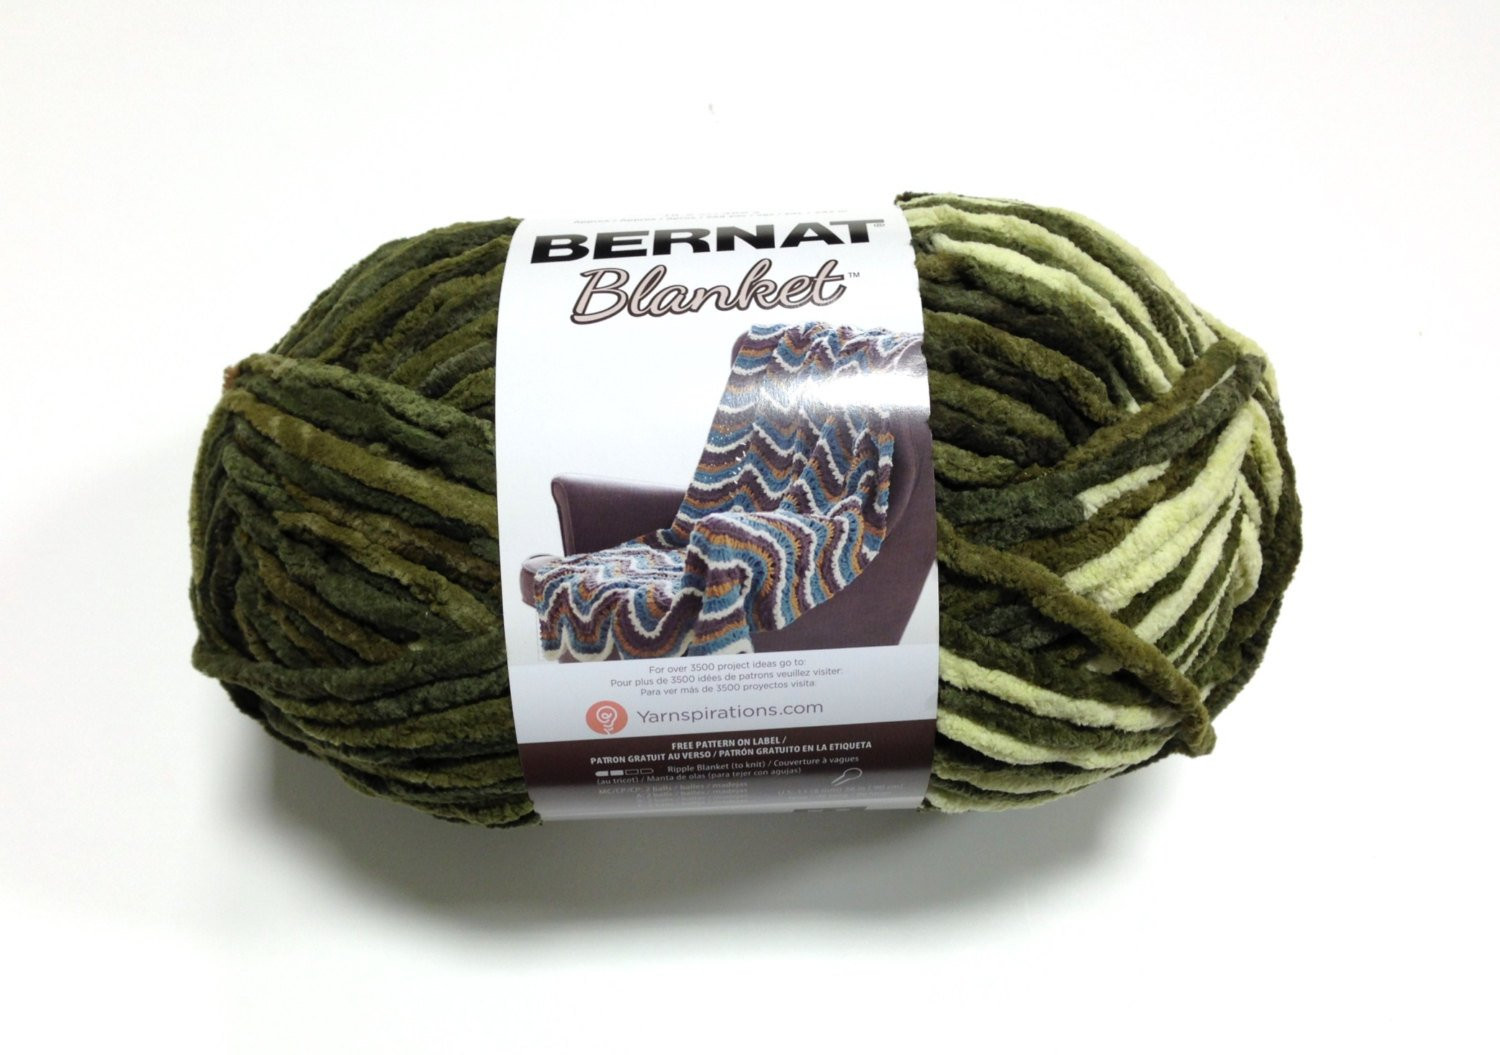 Bernat Blanket Yarn Elegant Bernat Blanket Yarn Gathering Moss Skein 300 Grams Of Beautiful 42 Models Bernat Blanket Yarn